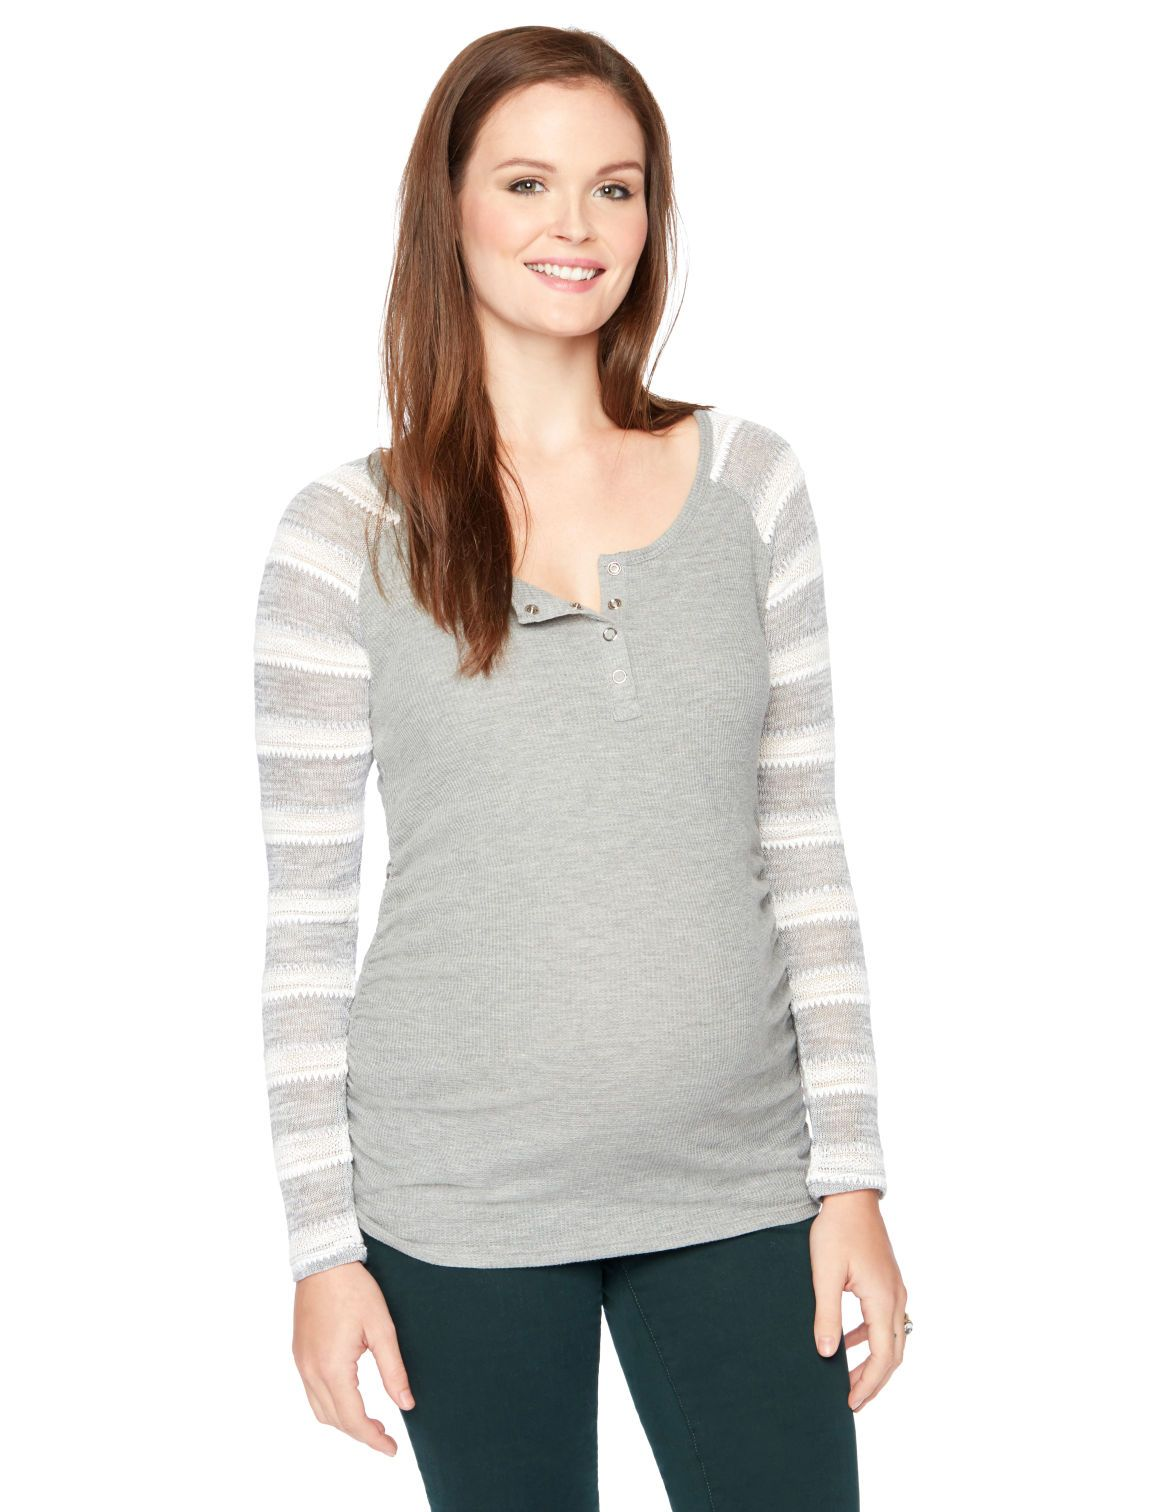 button detail striped henley maternity t shirt by Motherhood Maternity